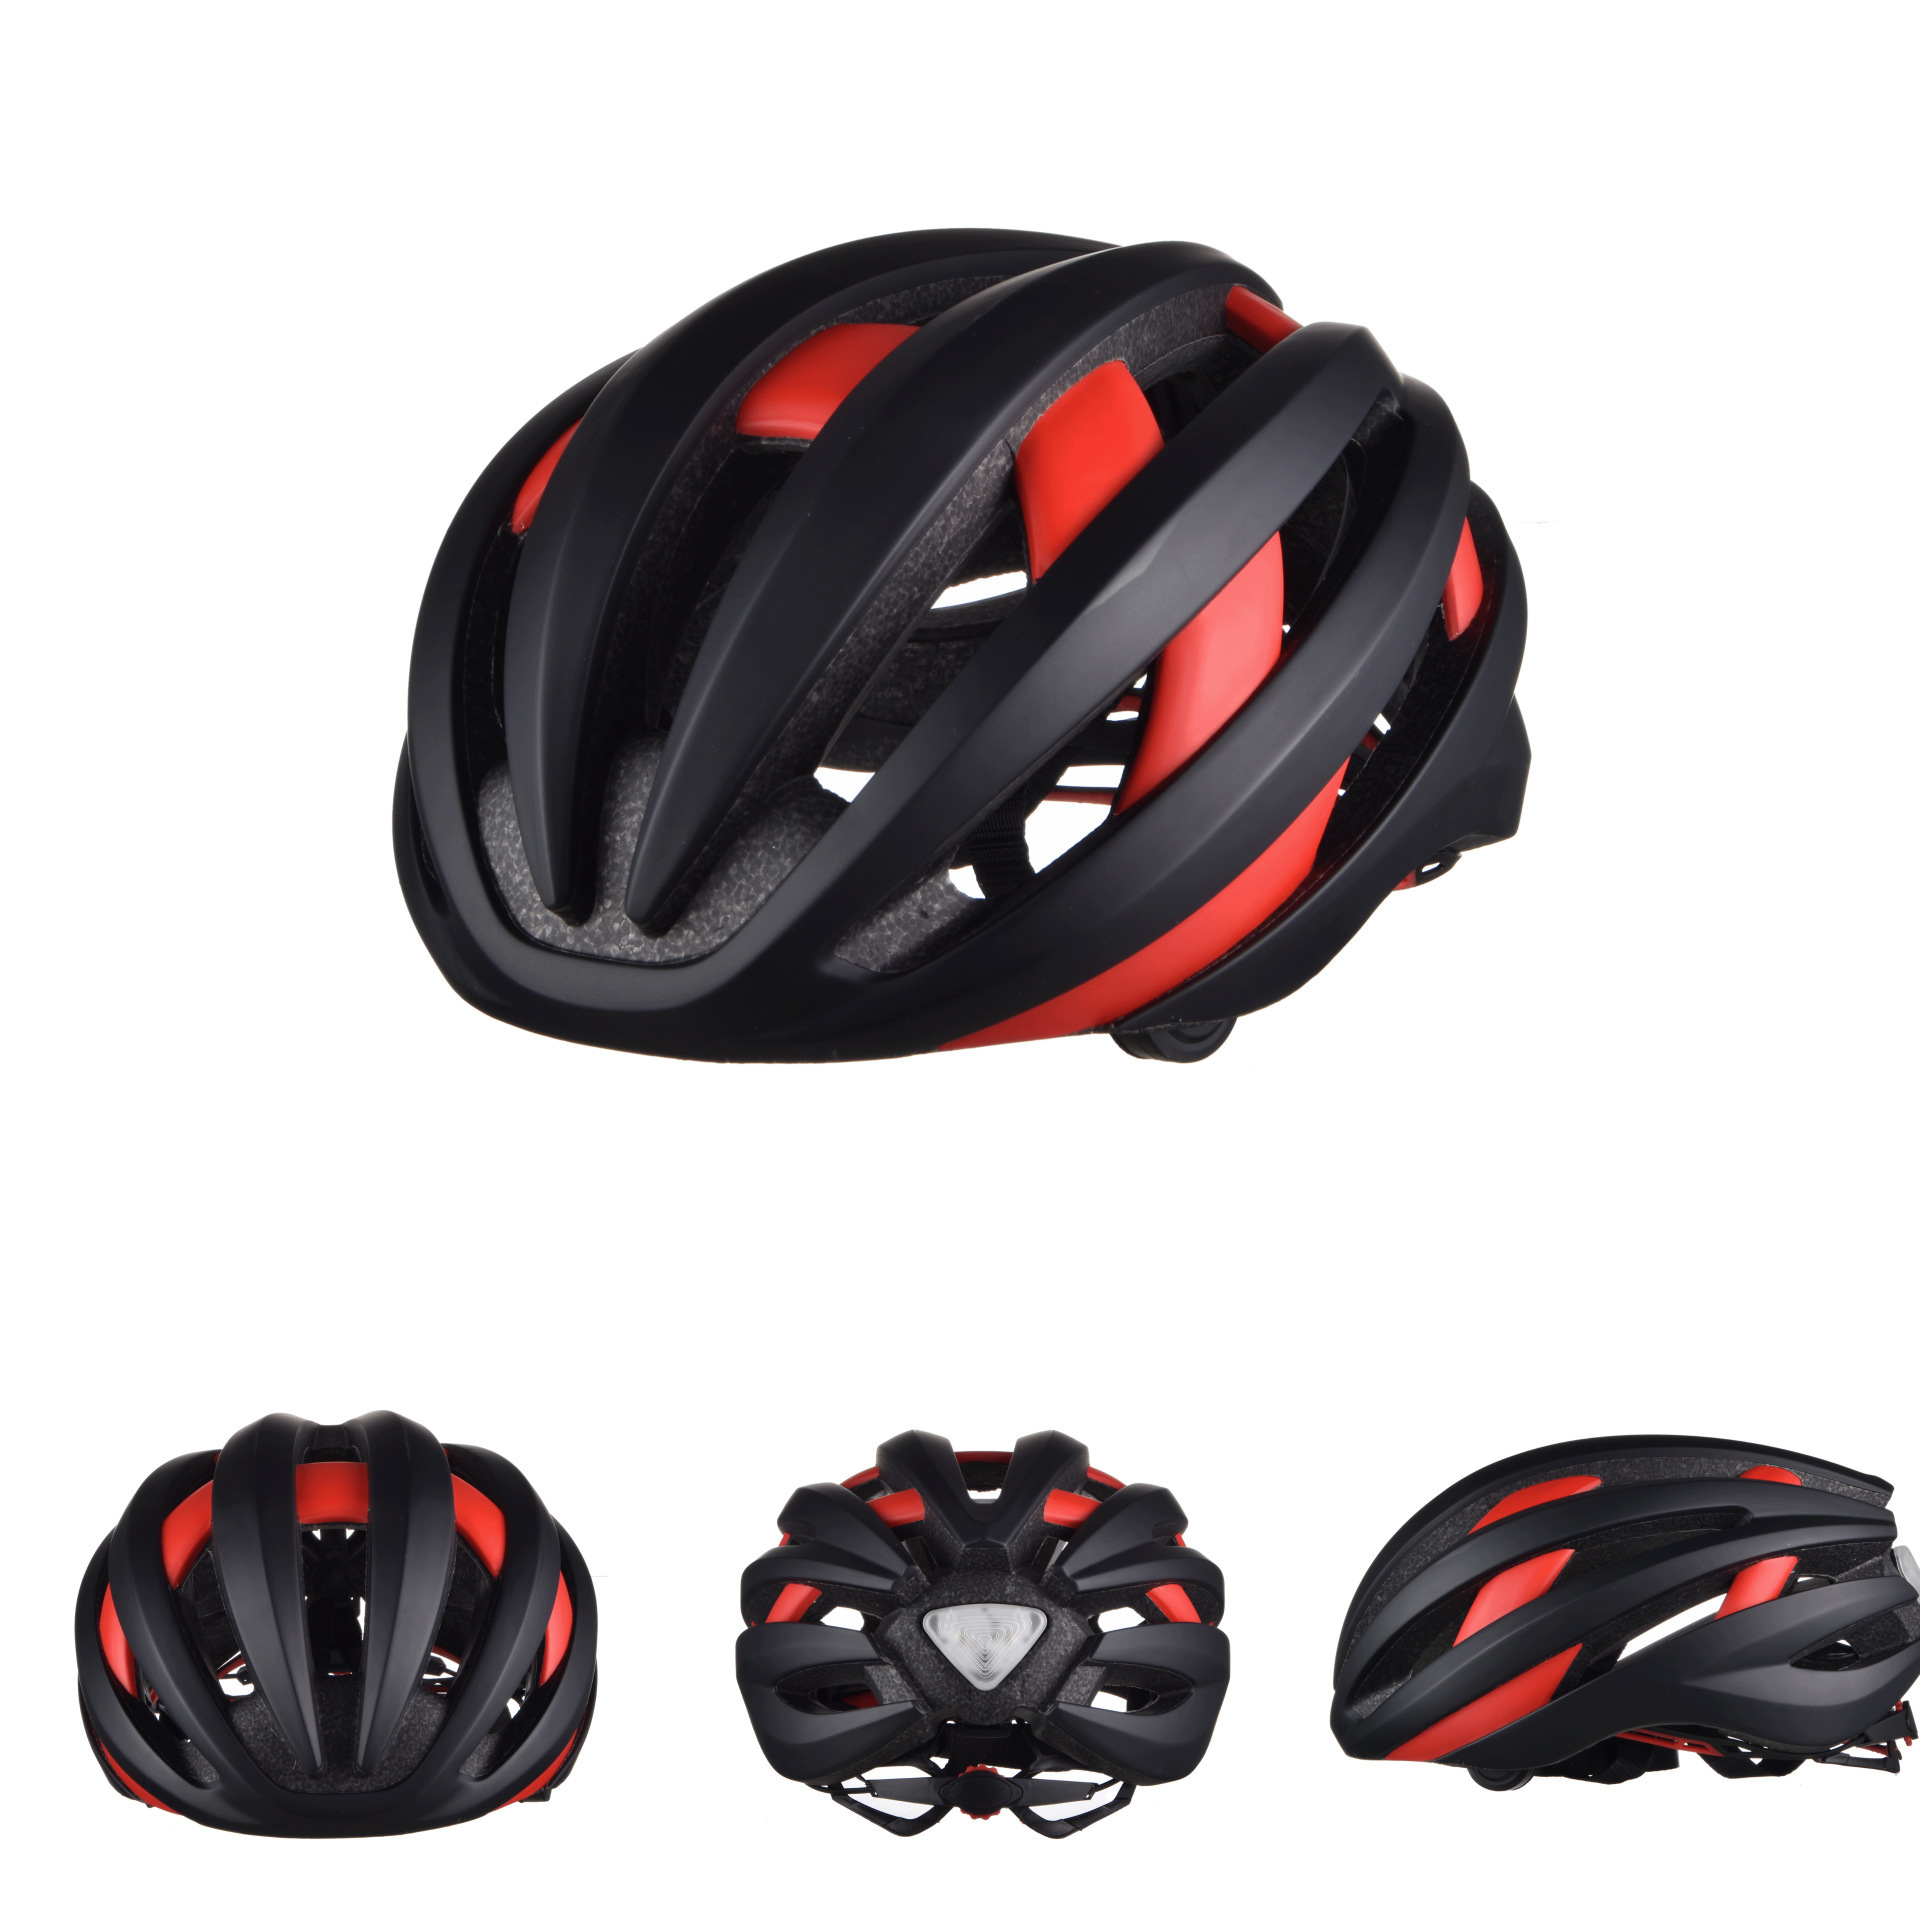 2017 new LED smart Integrally-molded Bluetooth helmet use in outdoor safety bicycle helmet<br>